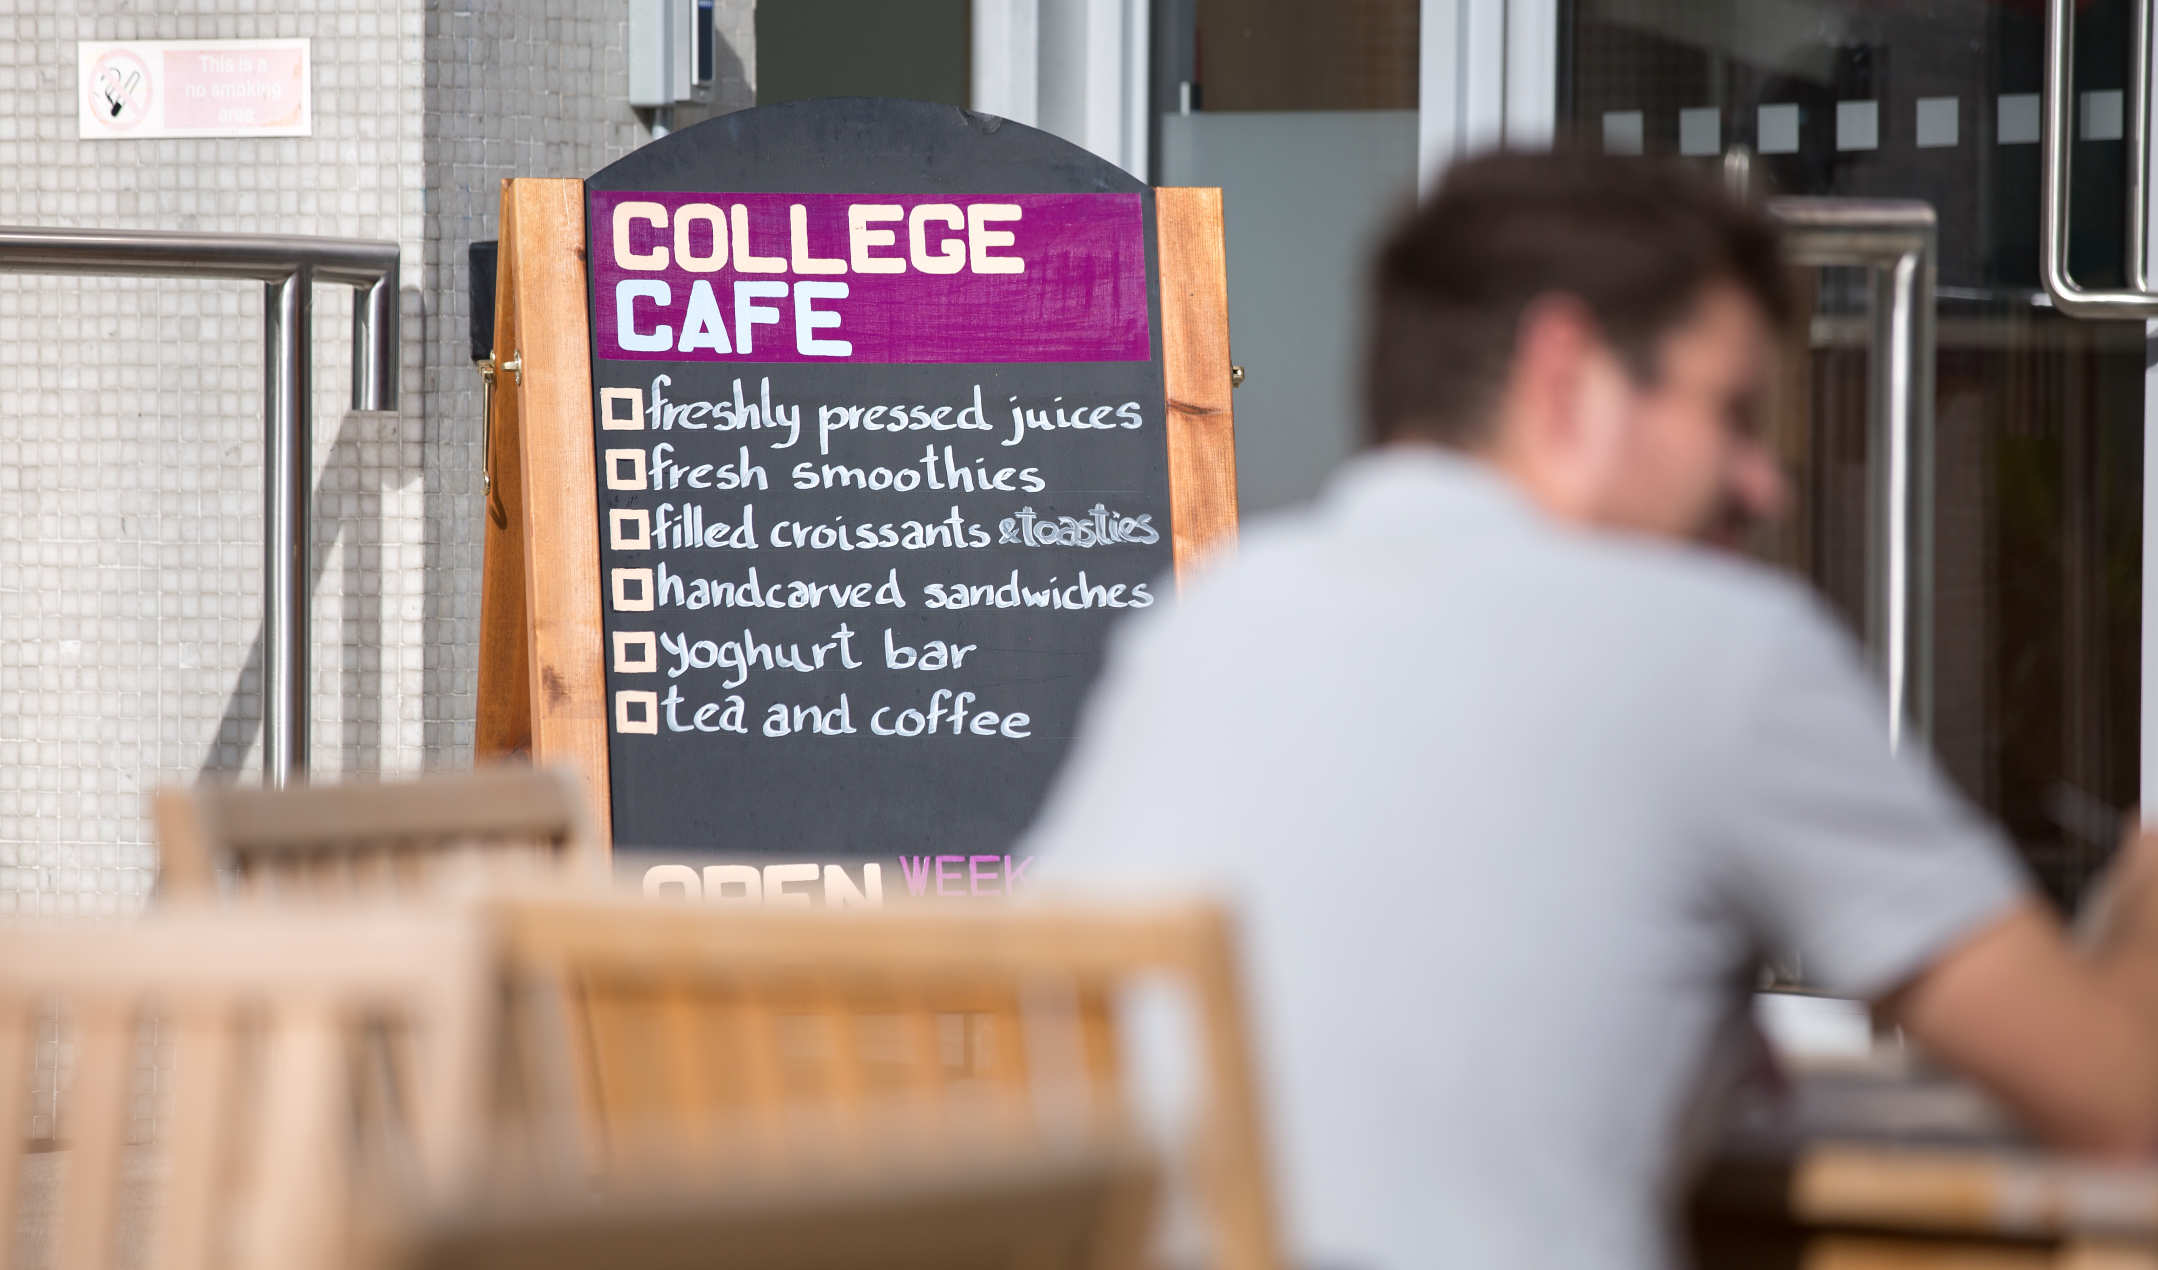 Picture of a sign outside the College Cafe